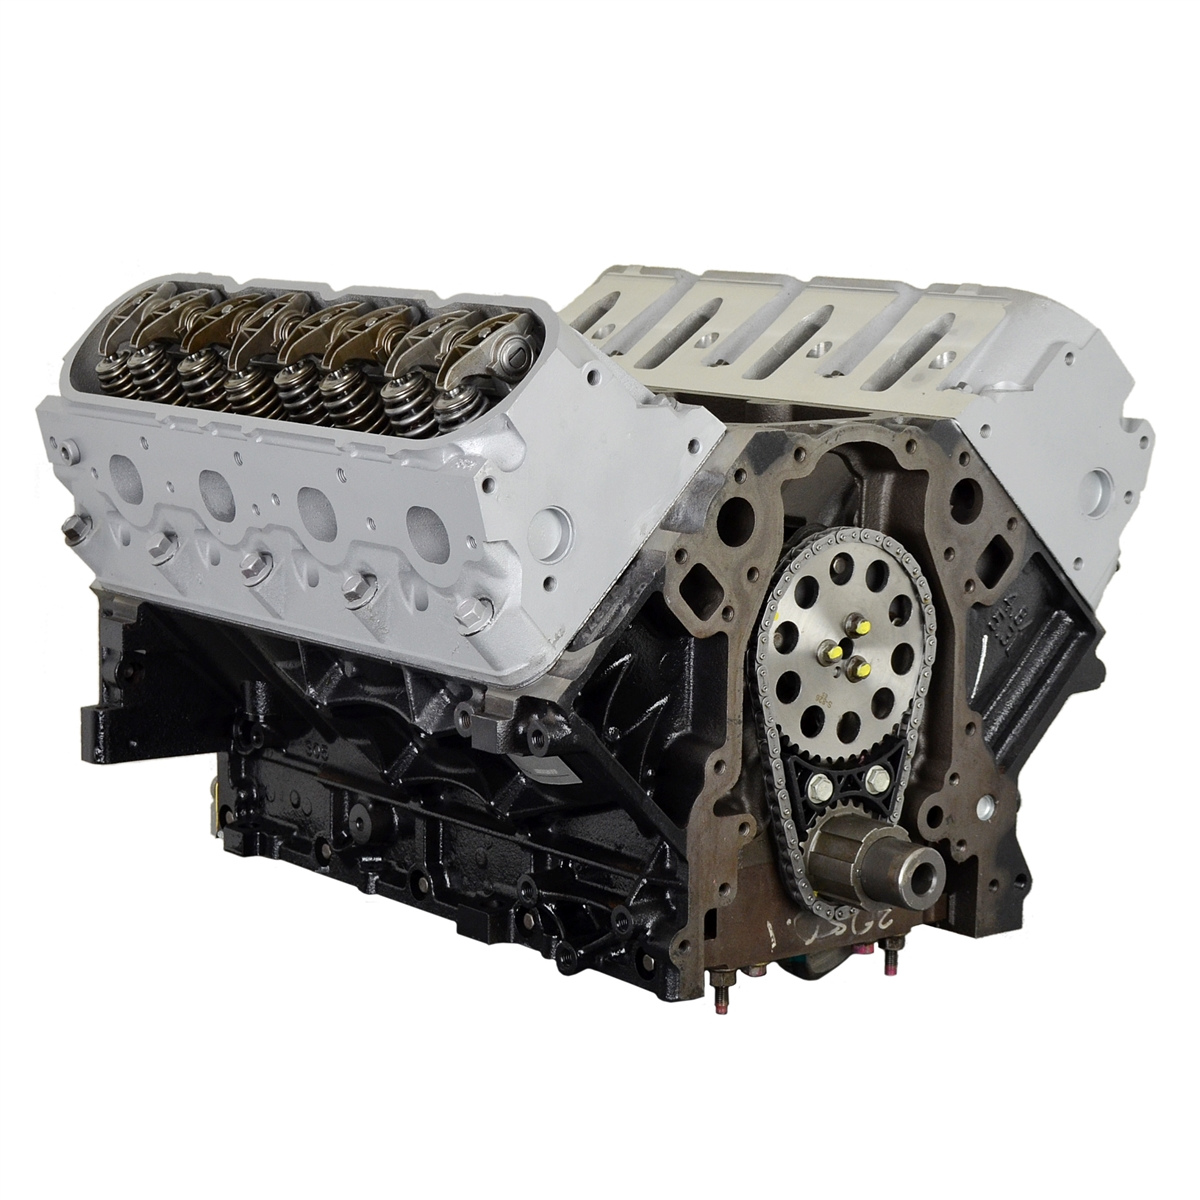 ATK LM7-LB-2 Chevy LM7/LS1 347CI Base Engine 500HP